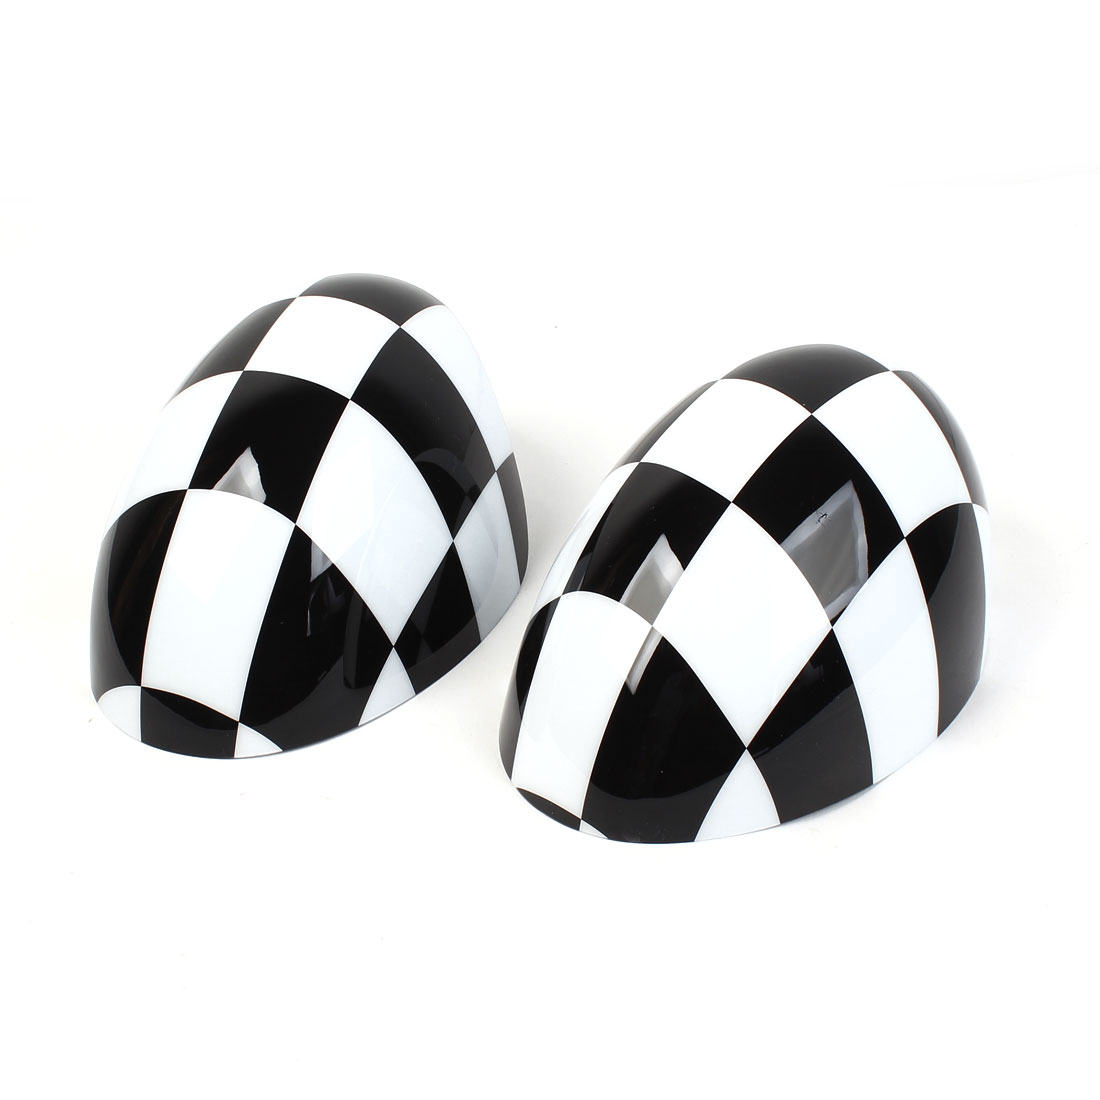 2 Pcs Black White Checkered Side Rear View Mirror Caps Cover Case for BMW MINI